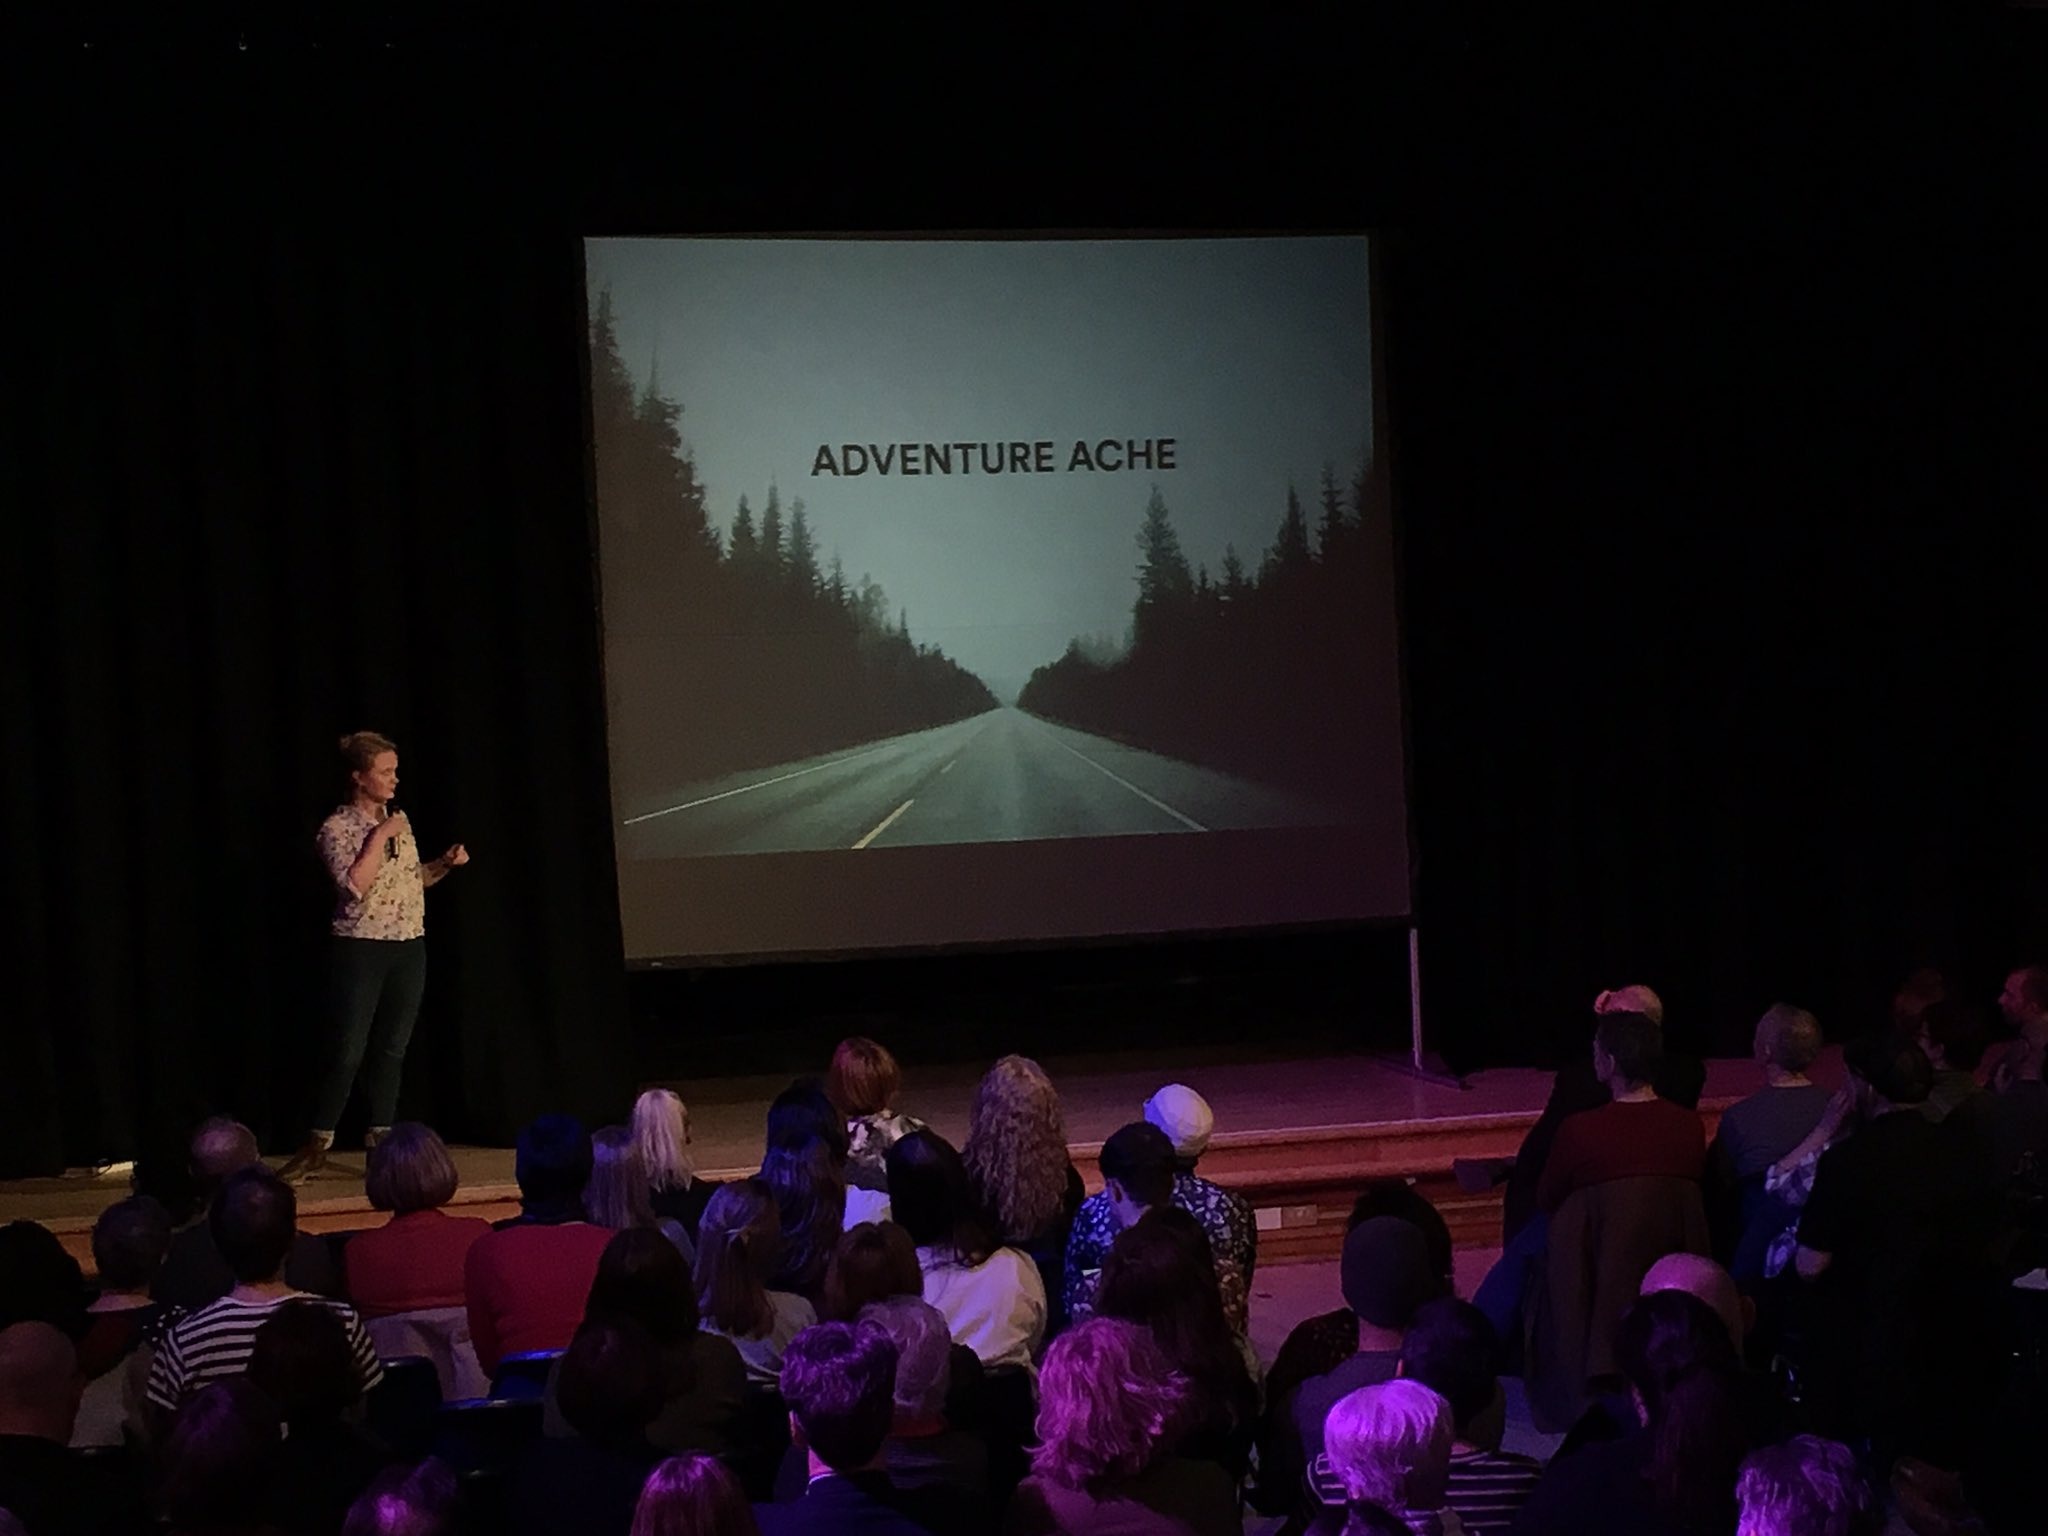 Know this feeling well #AdventureAche @YellowMatilda #PKN_DND https://t.co/RWujh6fnBe